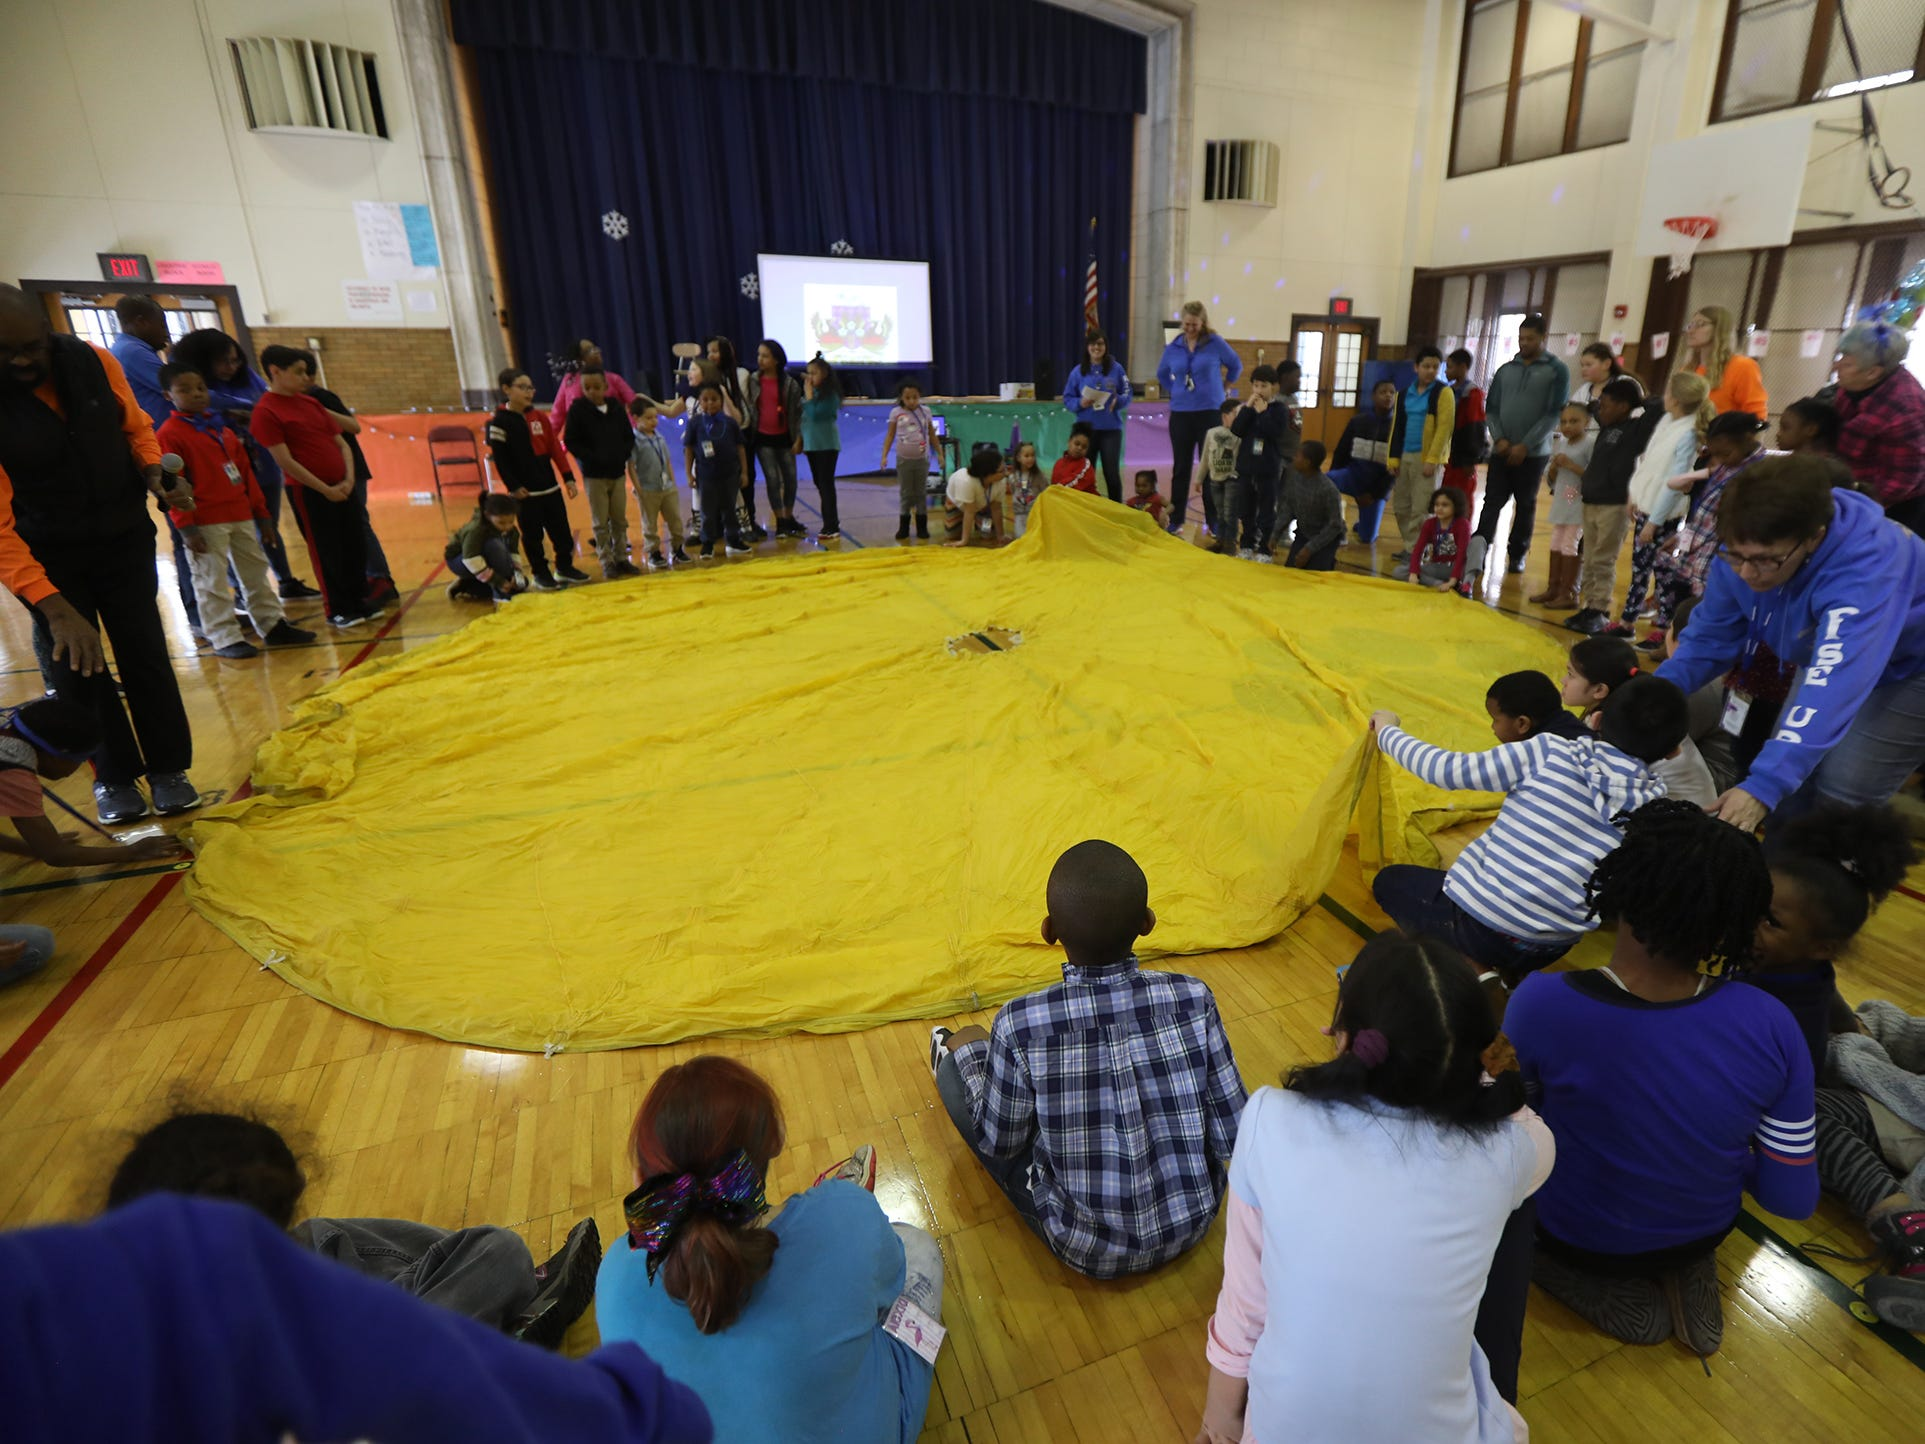 A group that rotated into the gym, sit, getting ready for the next round of a parachute game during House Day where the school invites parents in while they celebrate and continue teaching principles of each house.  The students and teachers are divided into four houses at RISE Community School.